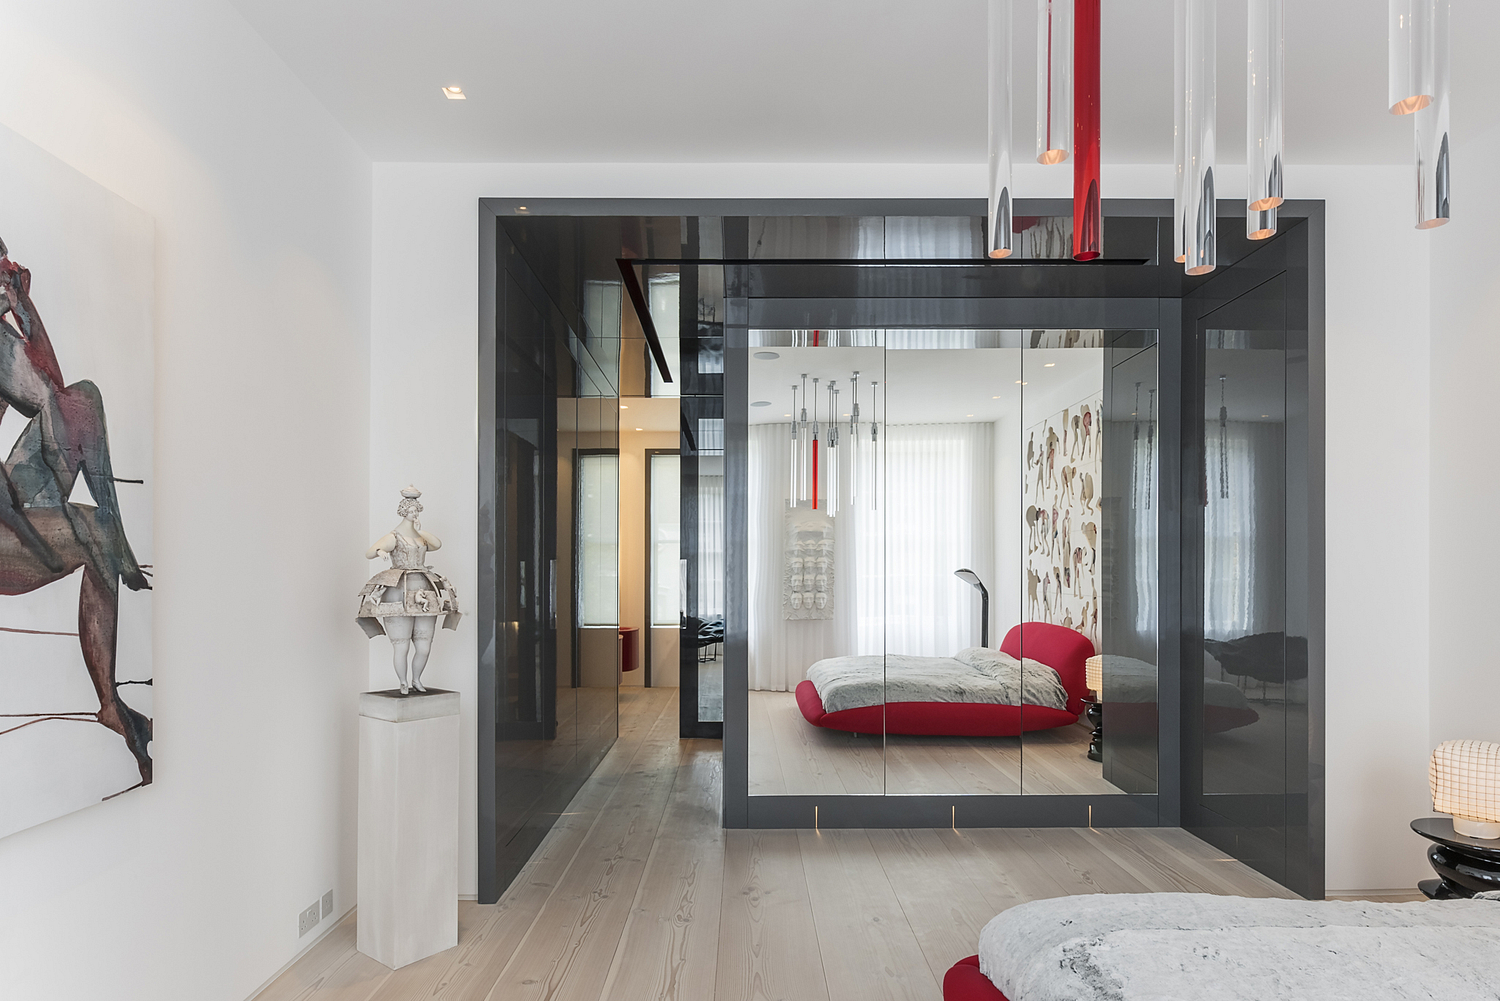 Bedroom detail with large mirror, London